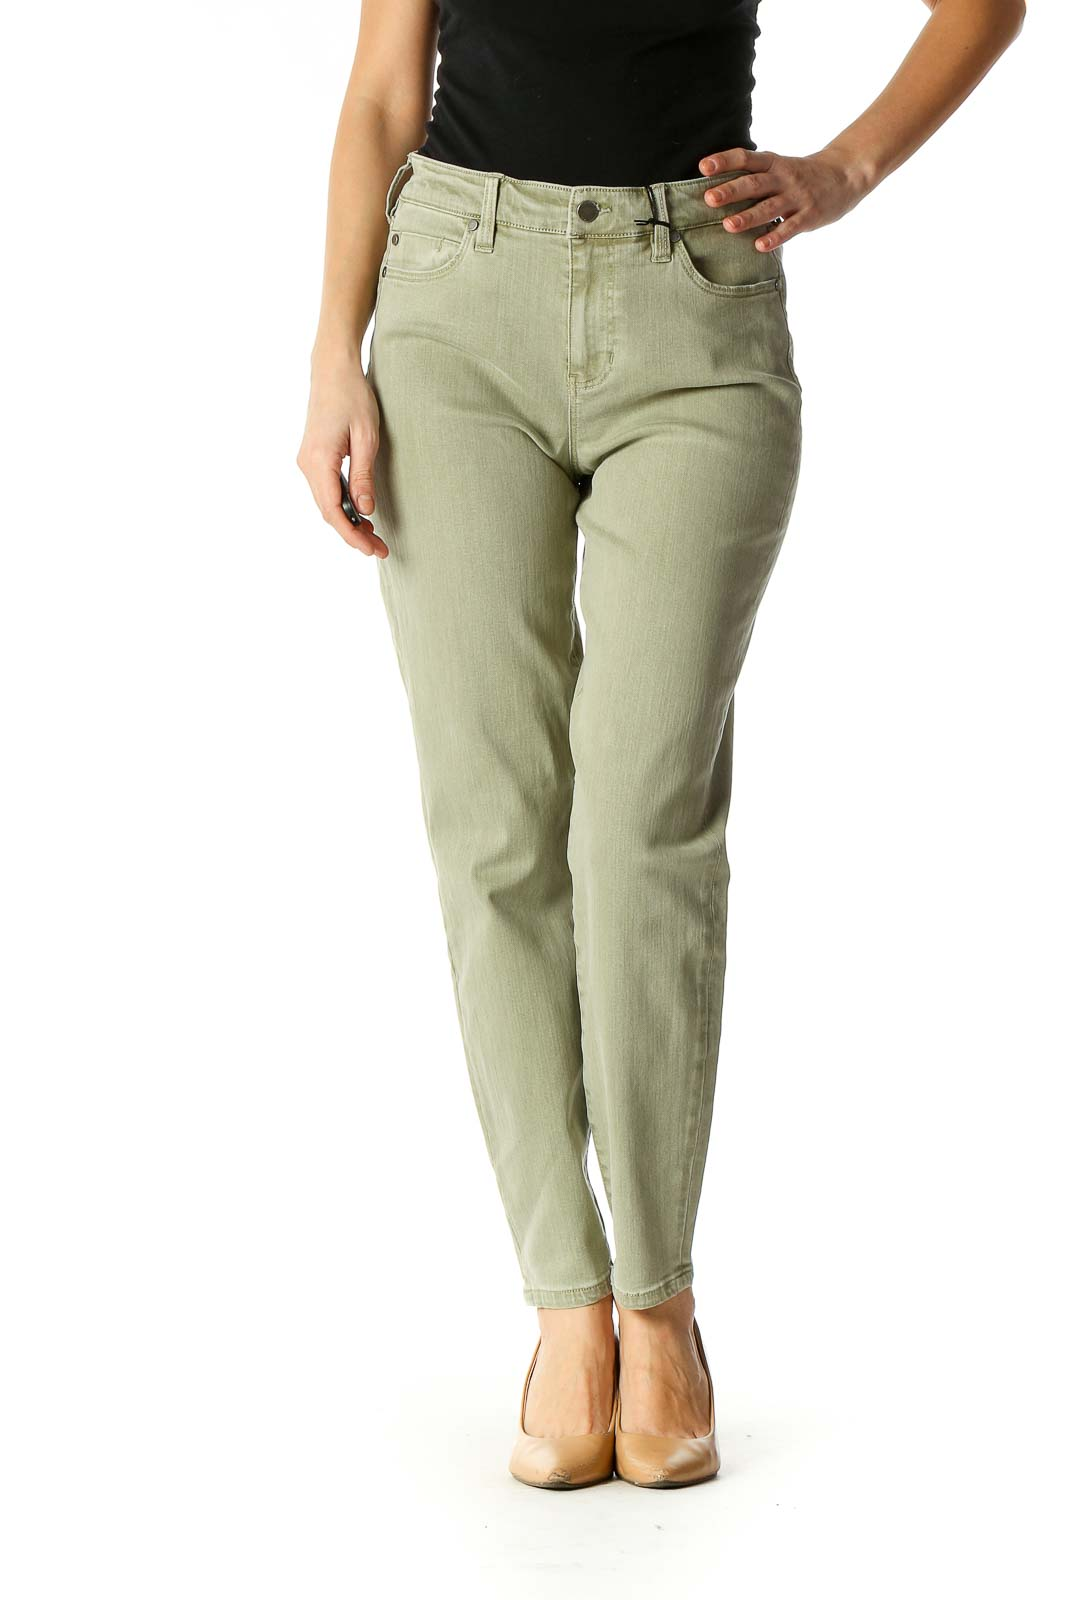 Green Casual Straight Leg Jeans Front